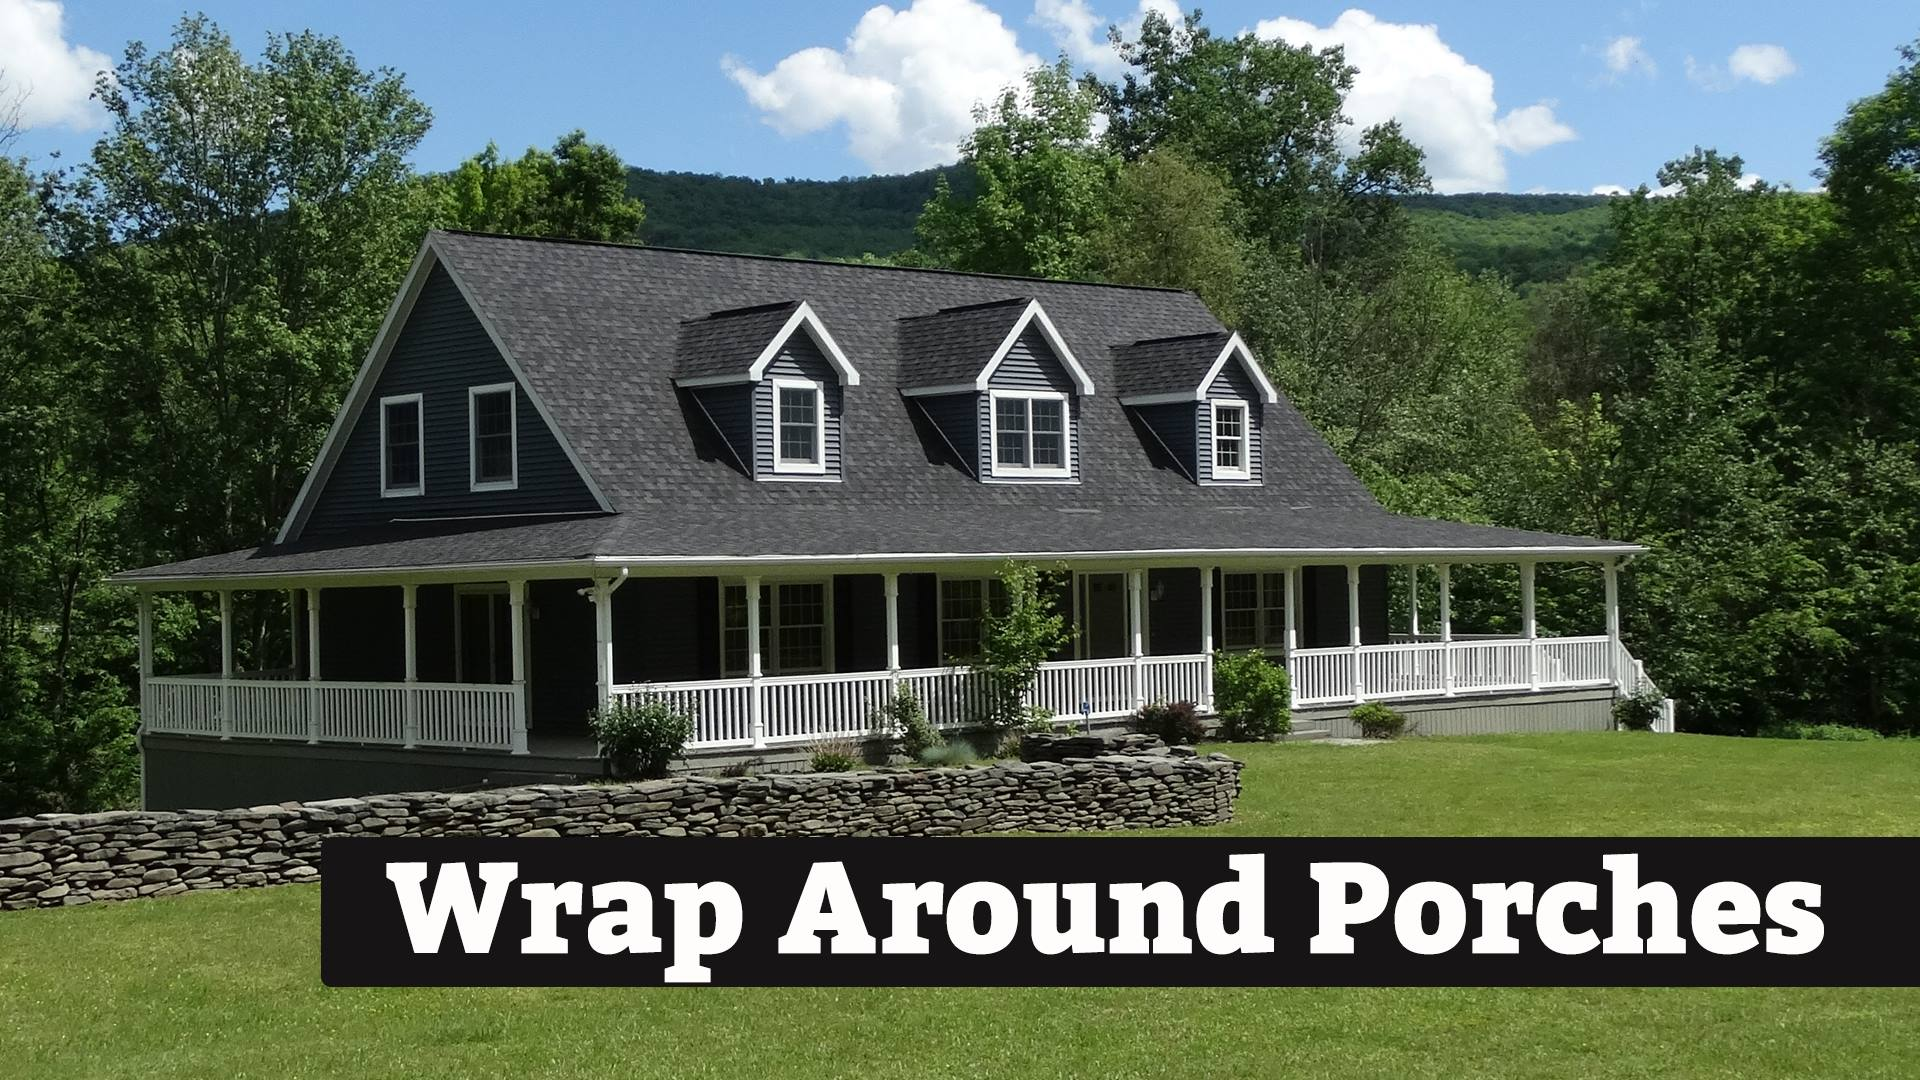 We design beautiful Wrap Around Porches